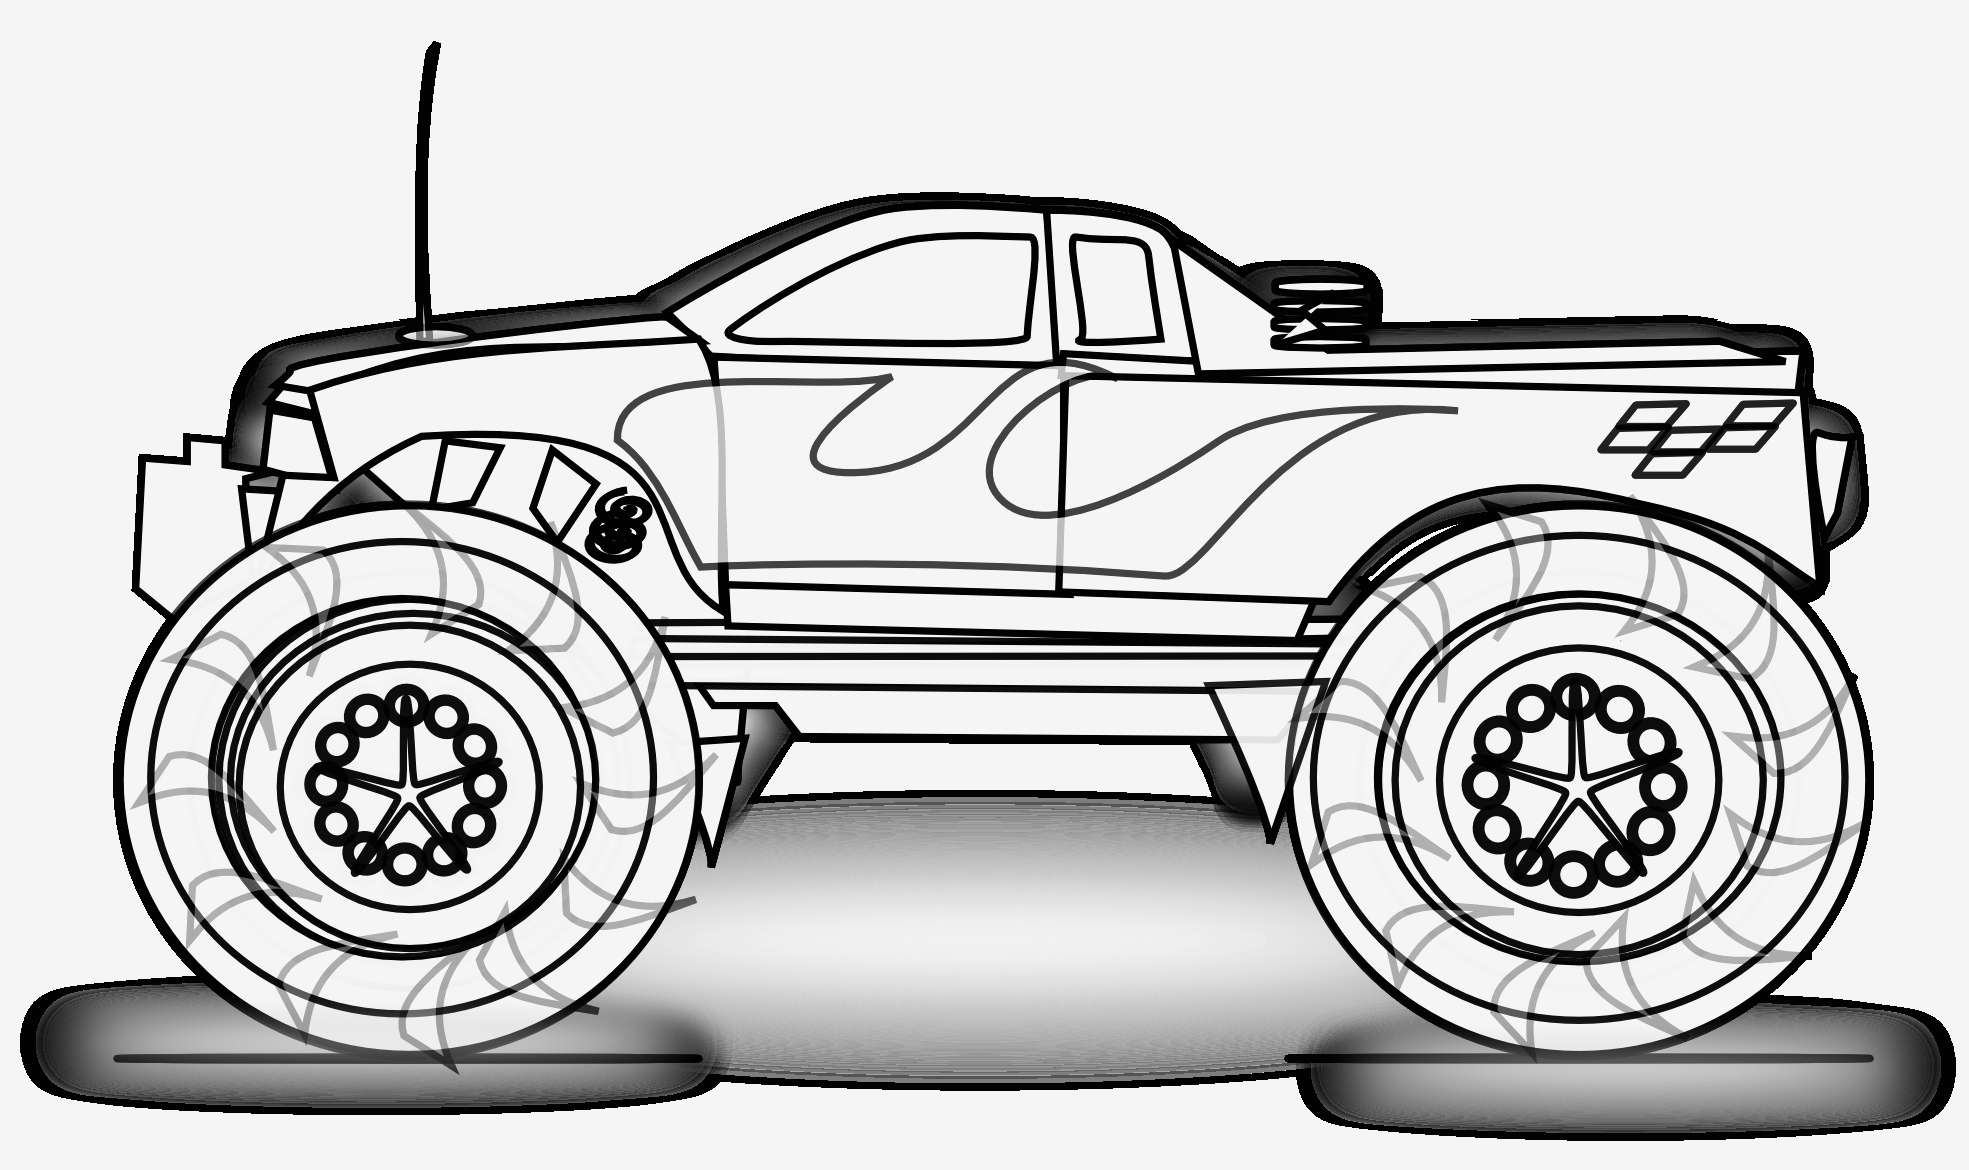 Printable Coloring Pages Monster Trucks  Gallery 15s - Free Download